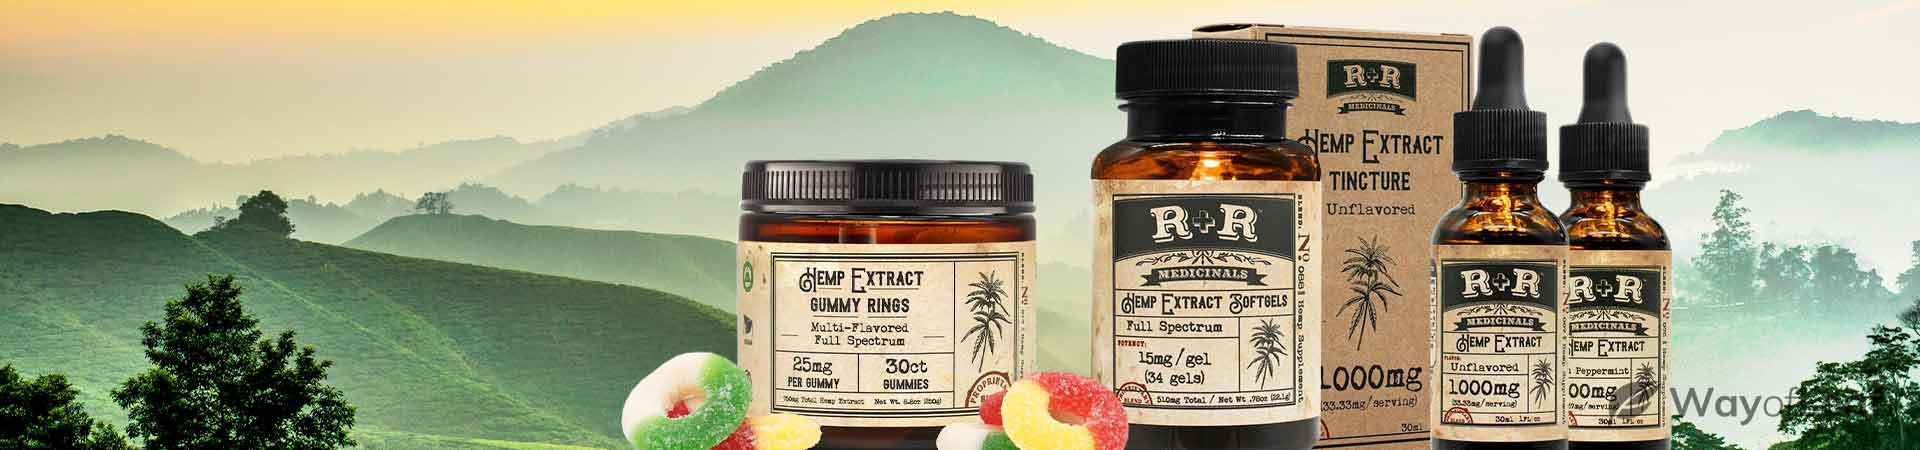 What Is the Brand R + R Medicinals Like?